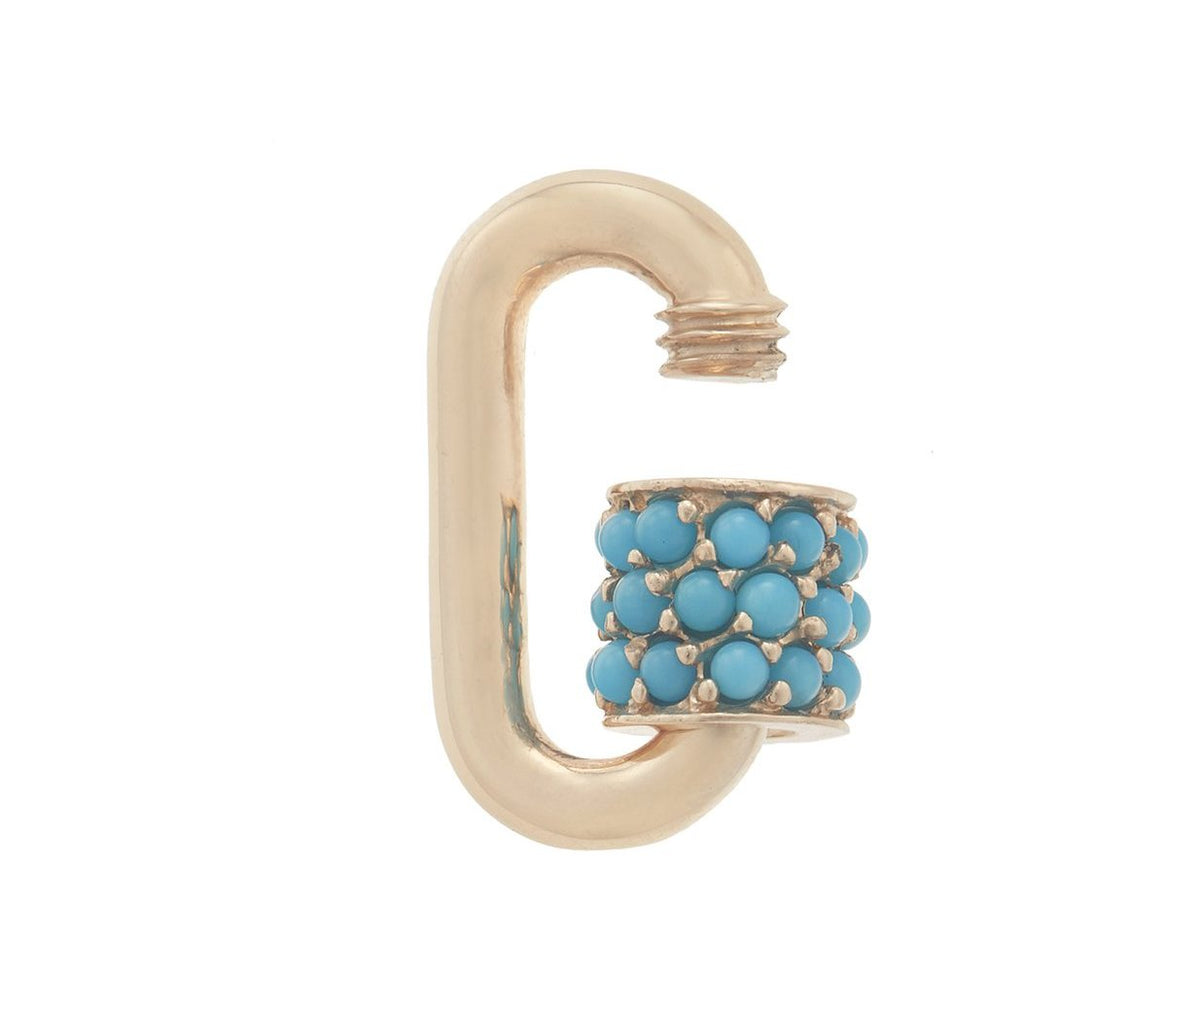 Stoned Chubby Babylock with Turquoise